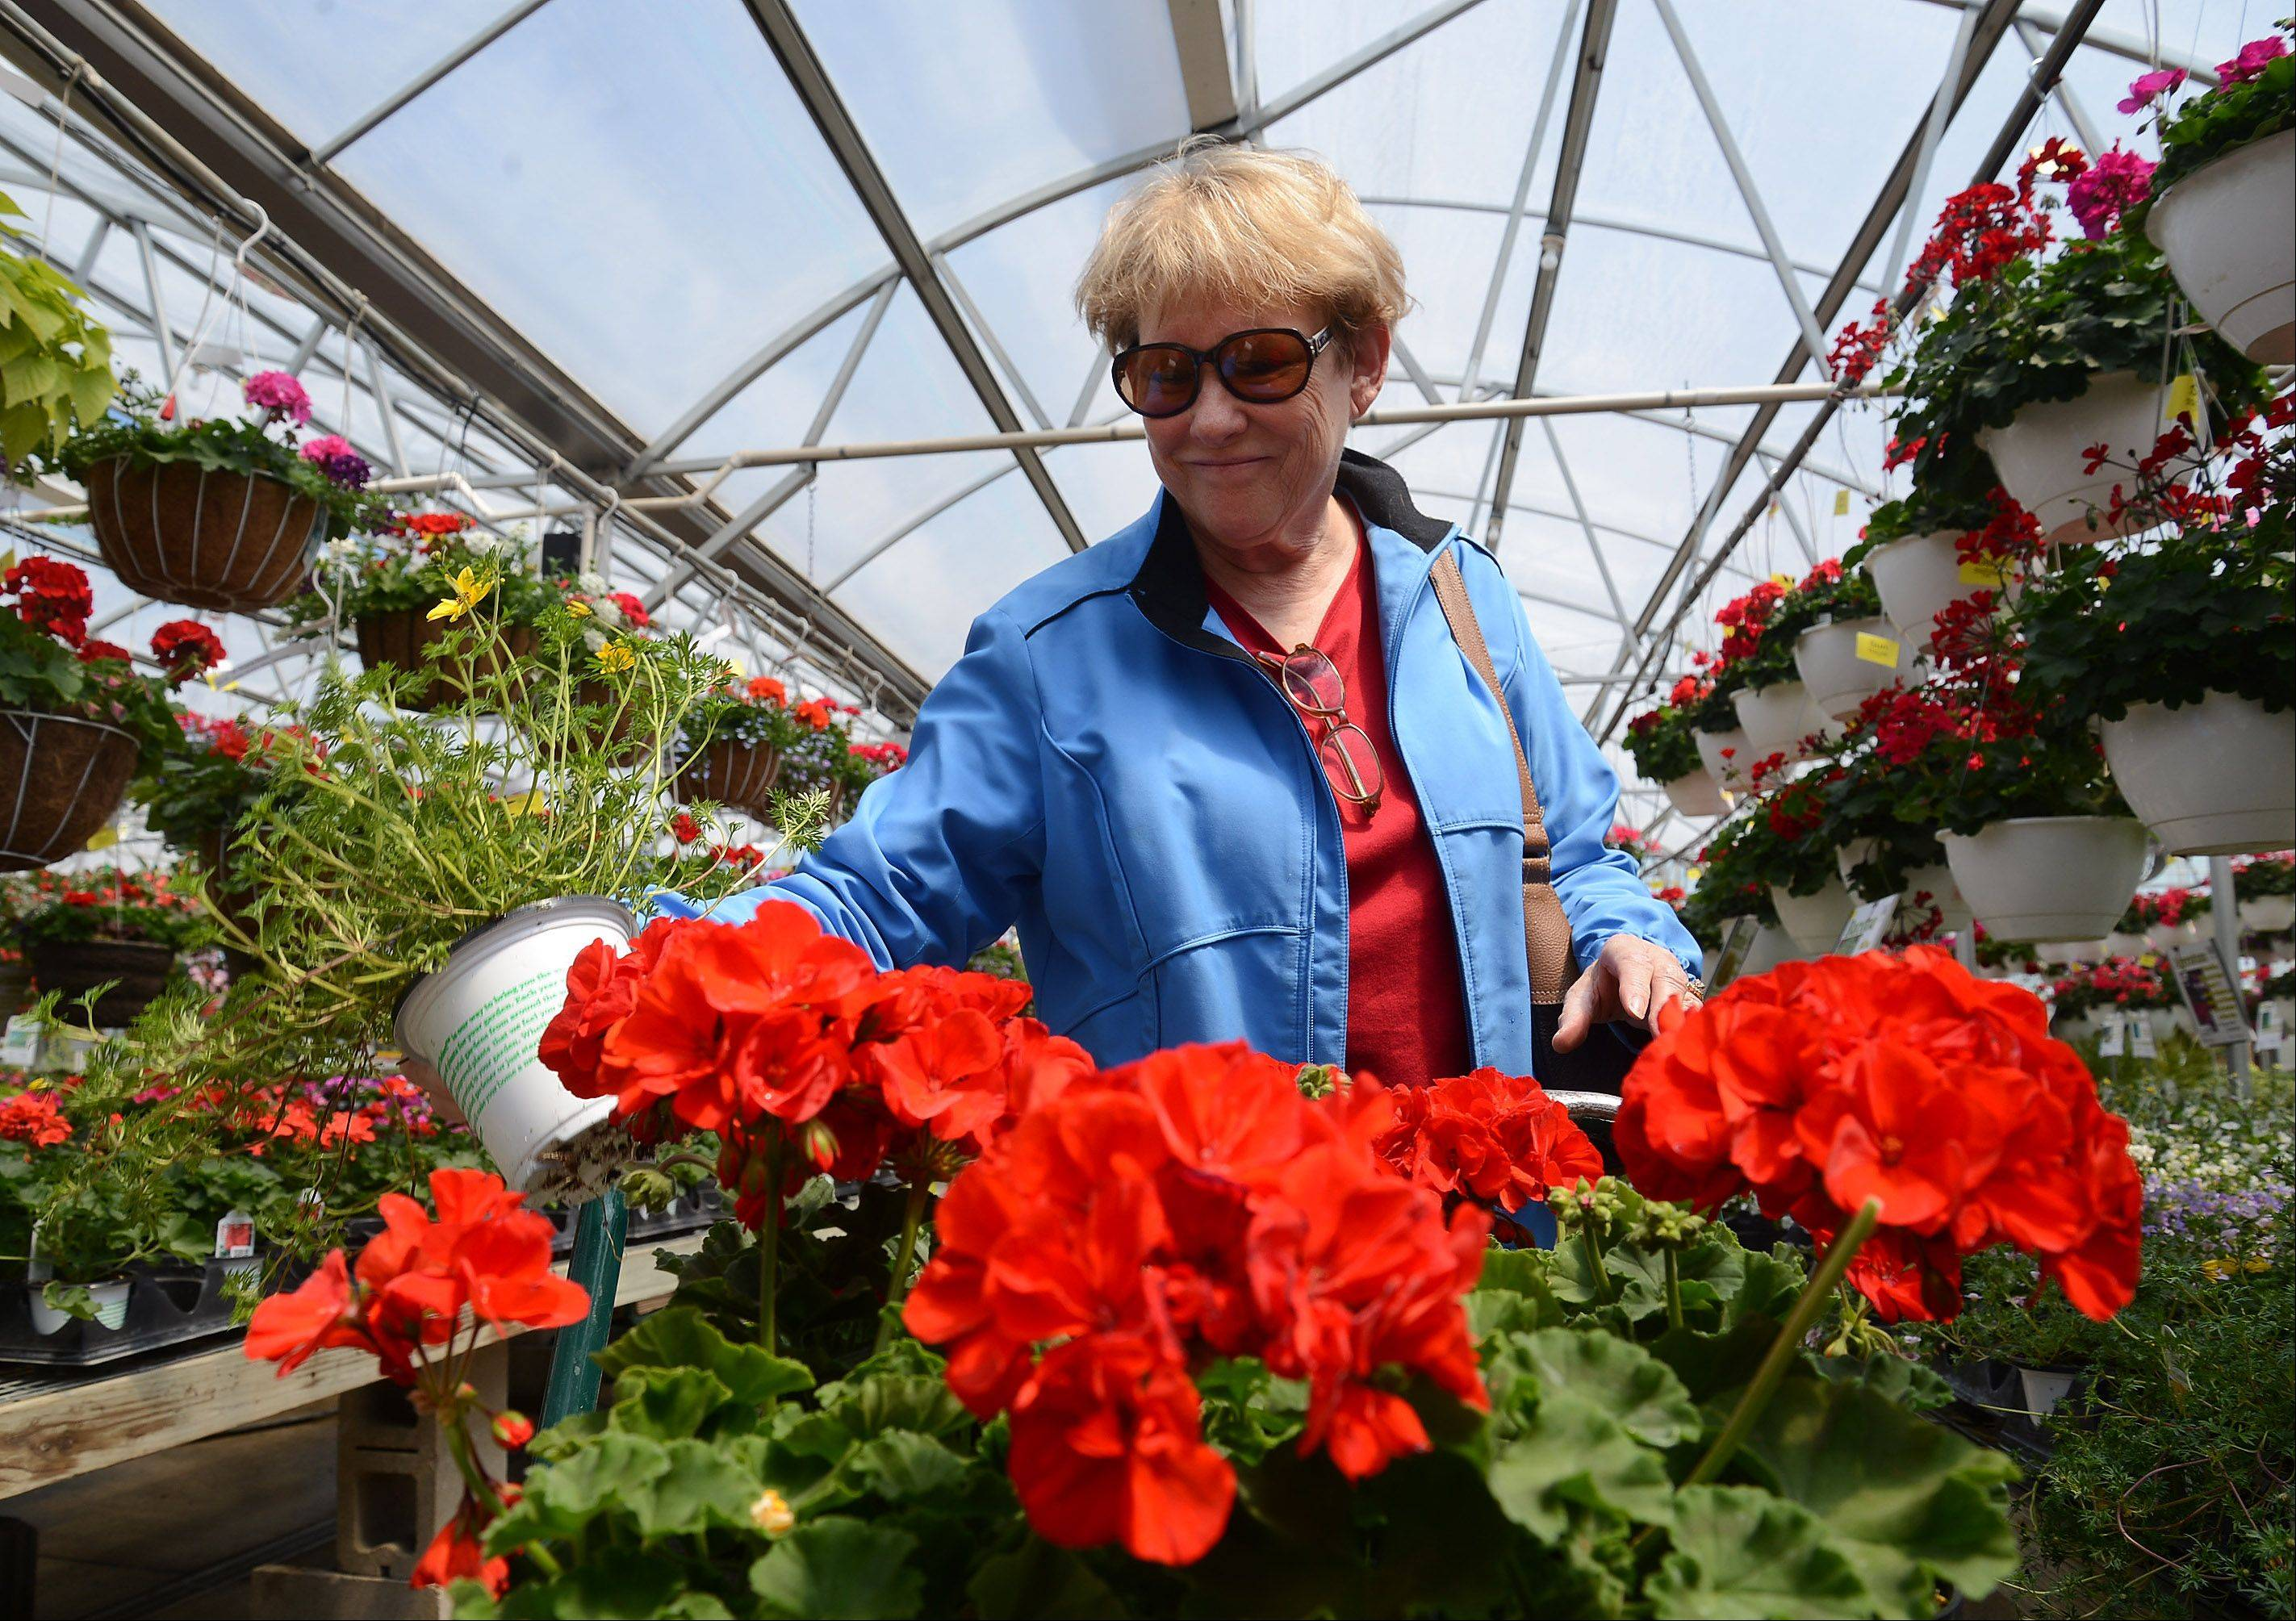 Shortly after Monday morning's frost melts away, Fae Littrell of Inverness picks out geraniums at Goebbert's Farm & Garden Center in South Barrington to plant now that temperatures are expected to shoot into the 80s.